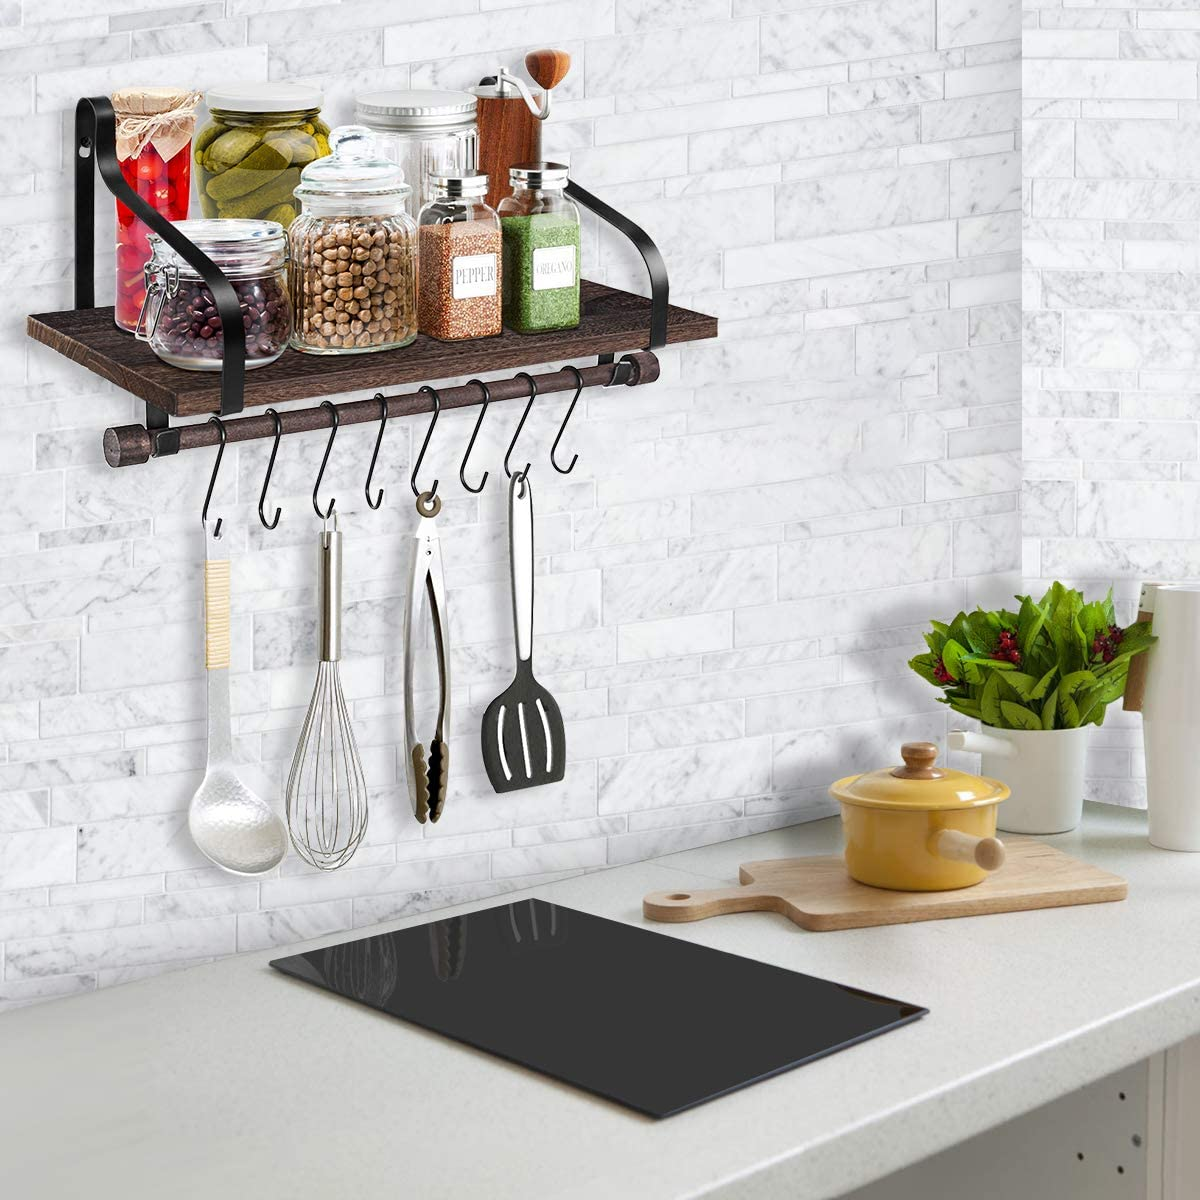 Rustic Wood Floating Shelves for Wall with Hooks Bathroom Kitchen Storage Small Shelf